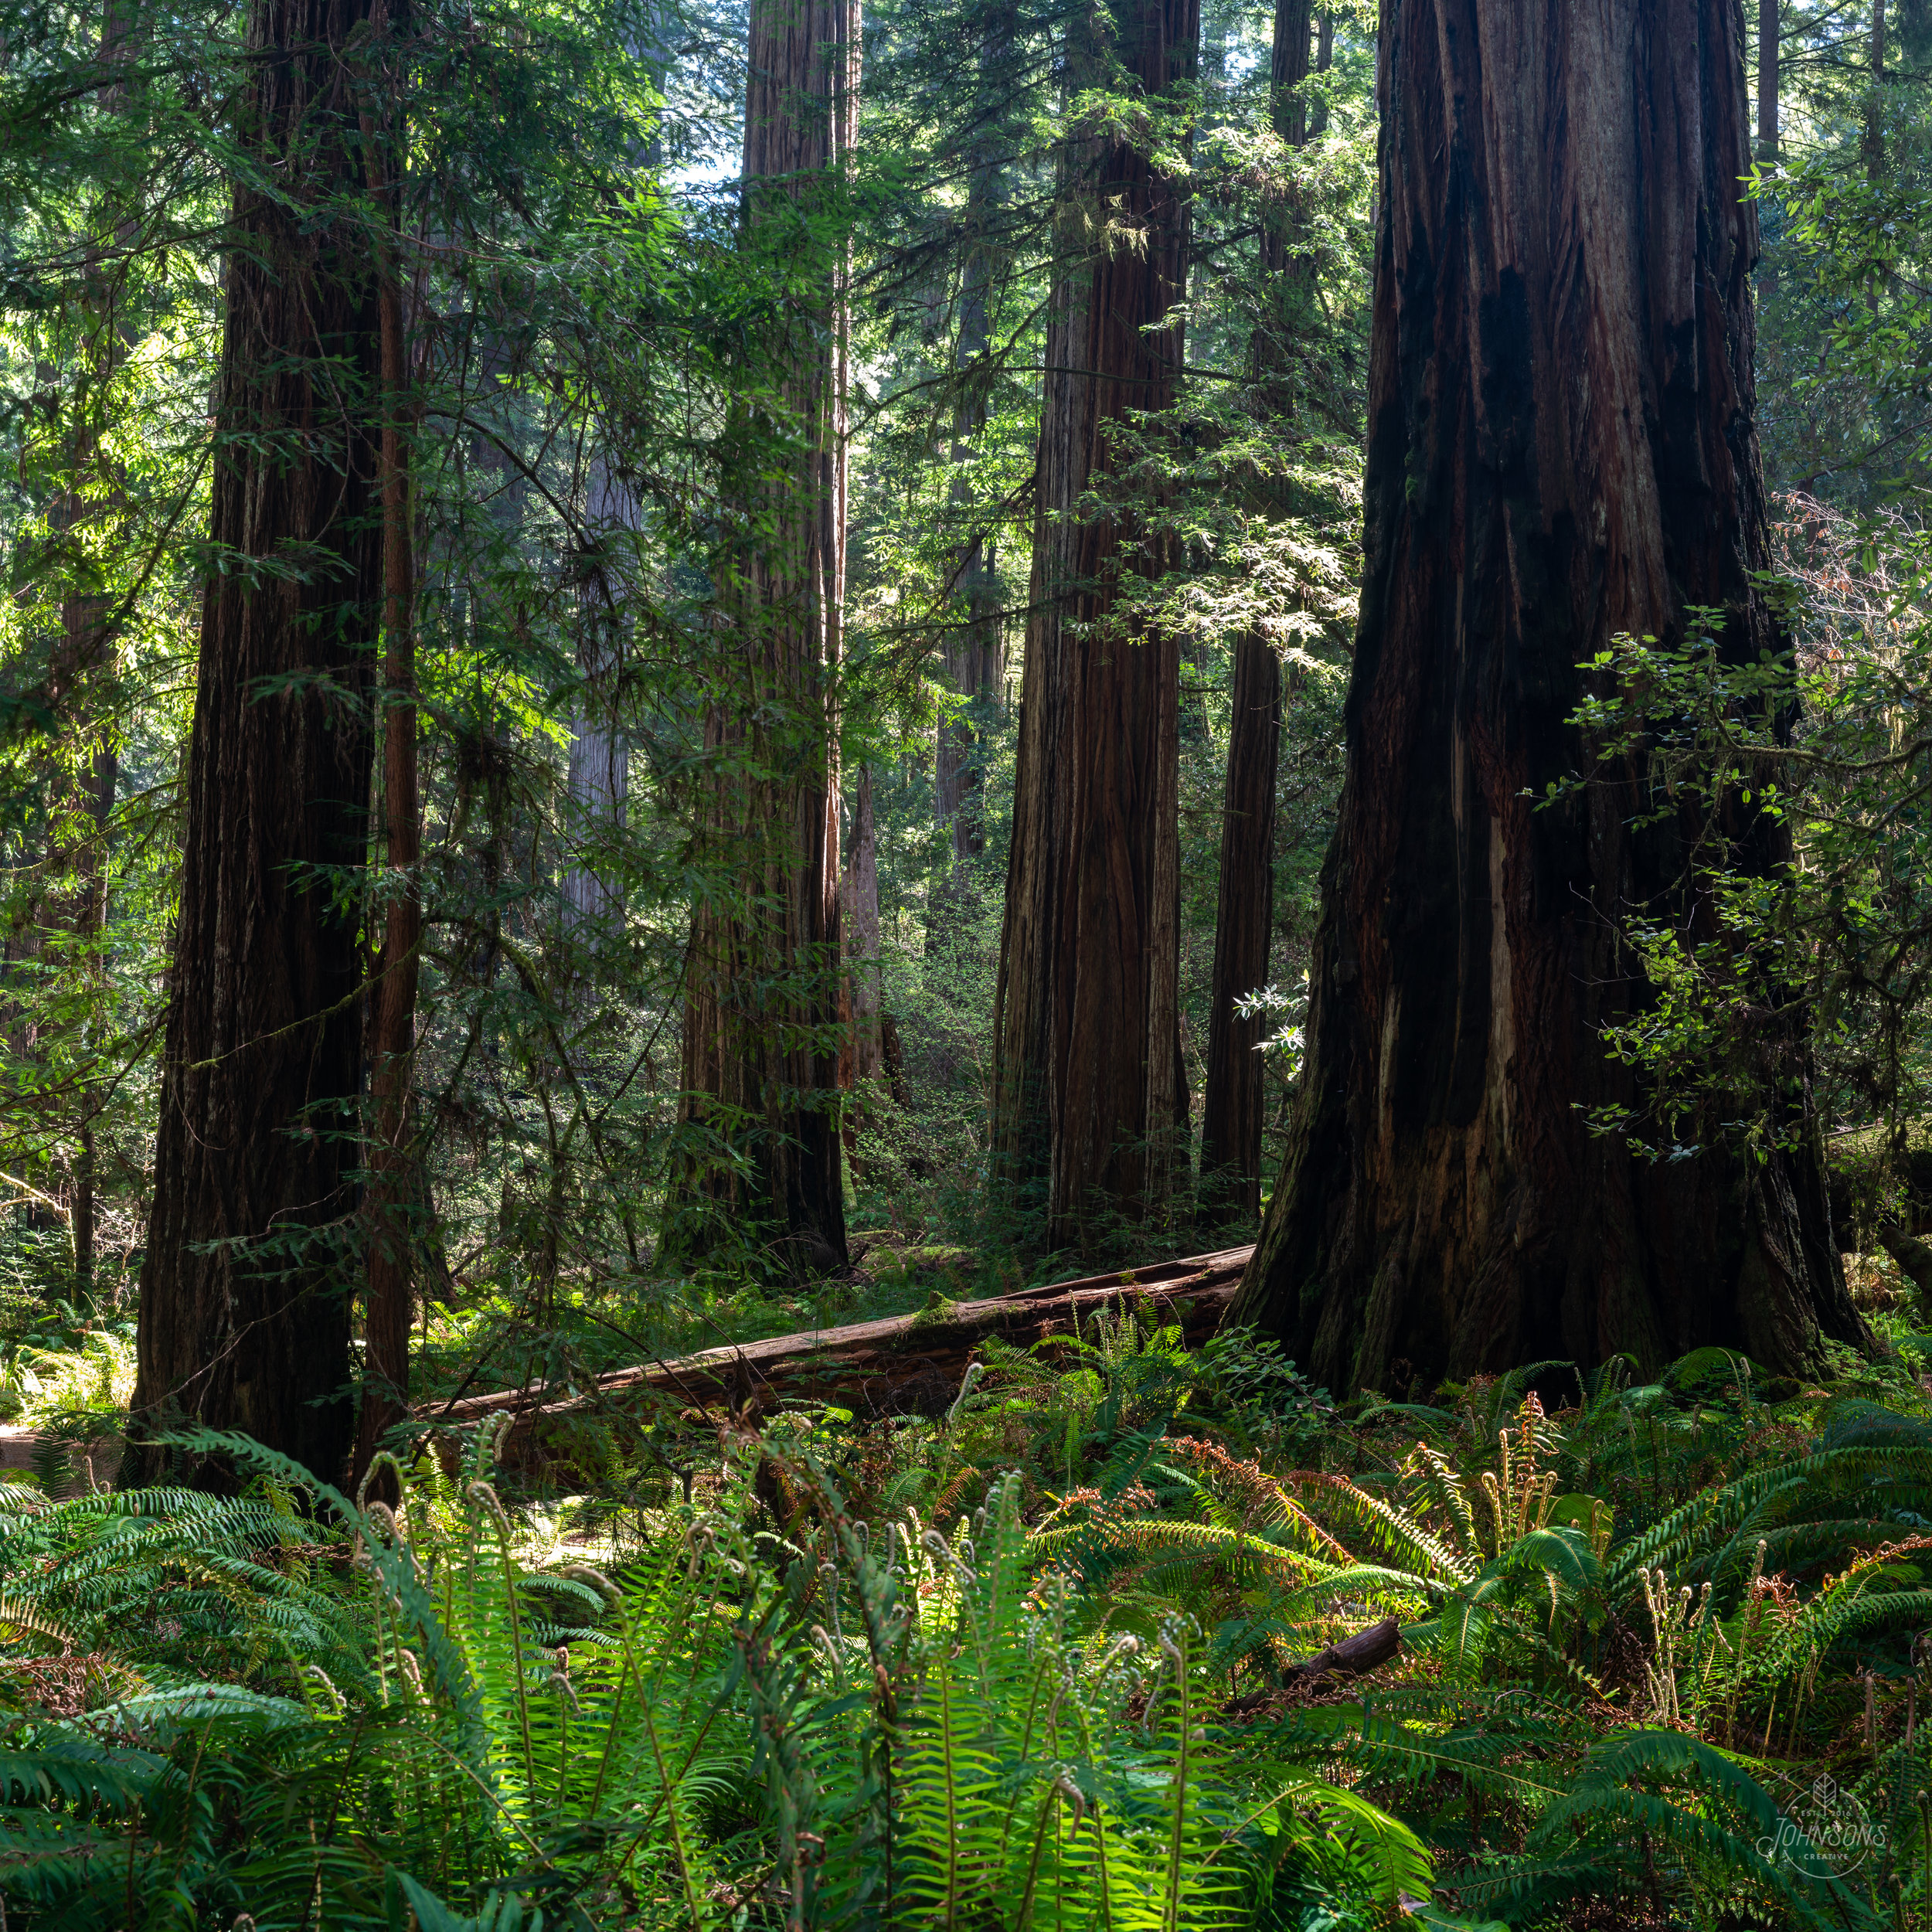 redwoods_johnsonscreative-28.jpg